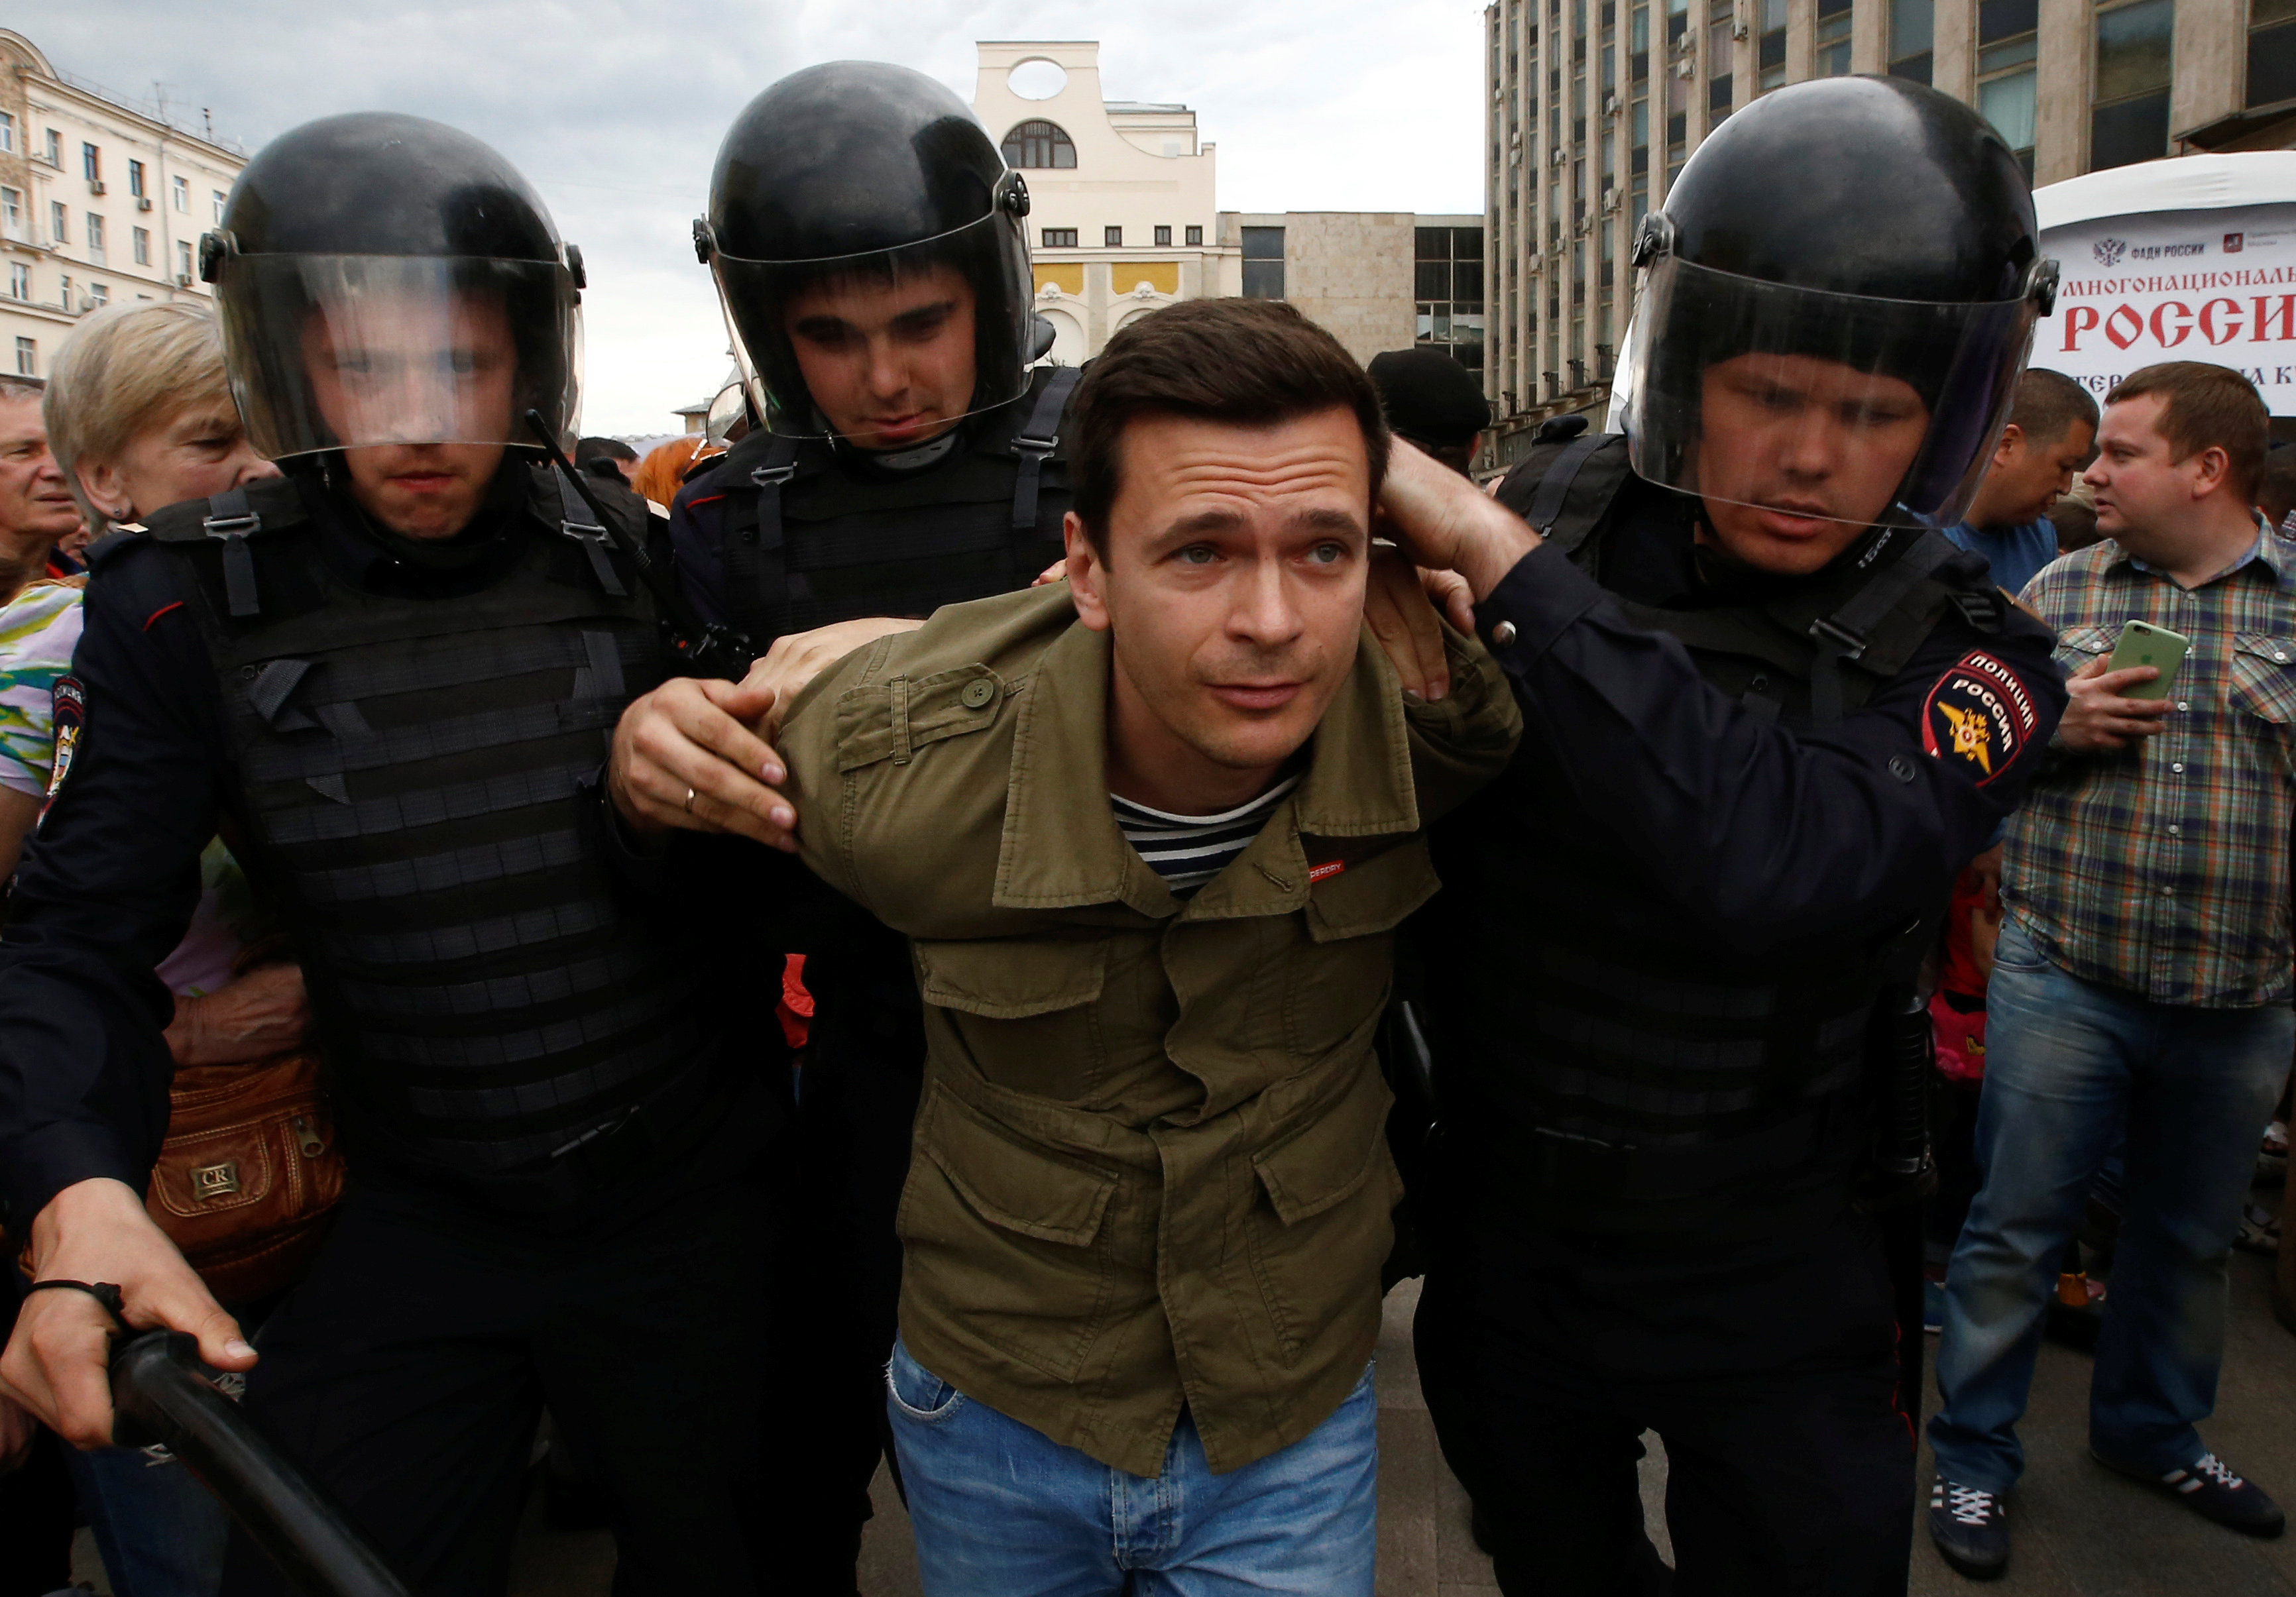 Riot police detain Russian opposition figure Ilya Yashin during an anti-corruption protest organised by opposition leader Alexei Navalny, in central Moscow, Russia, June 12, 2017. REUTERS/Sergei Karpukhin